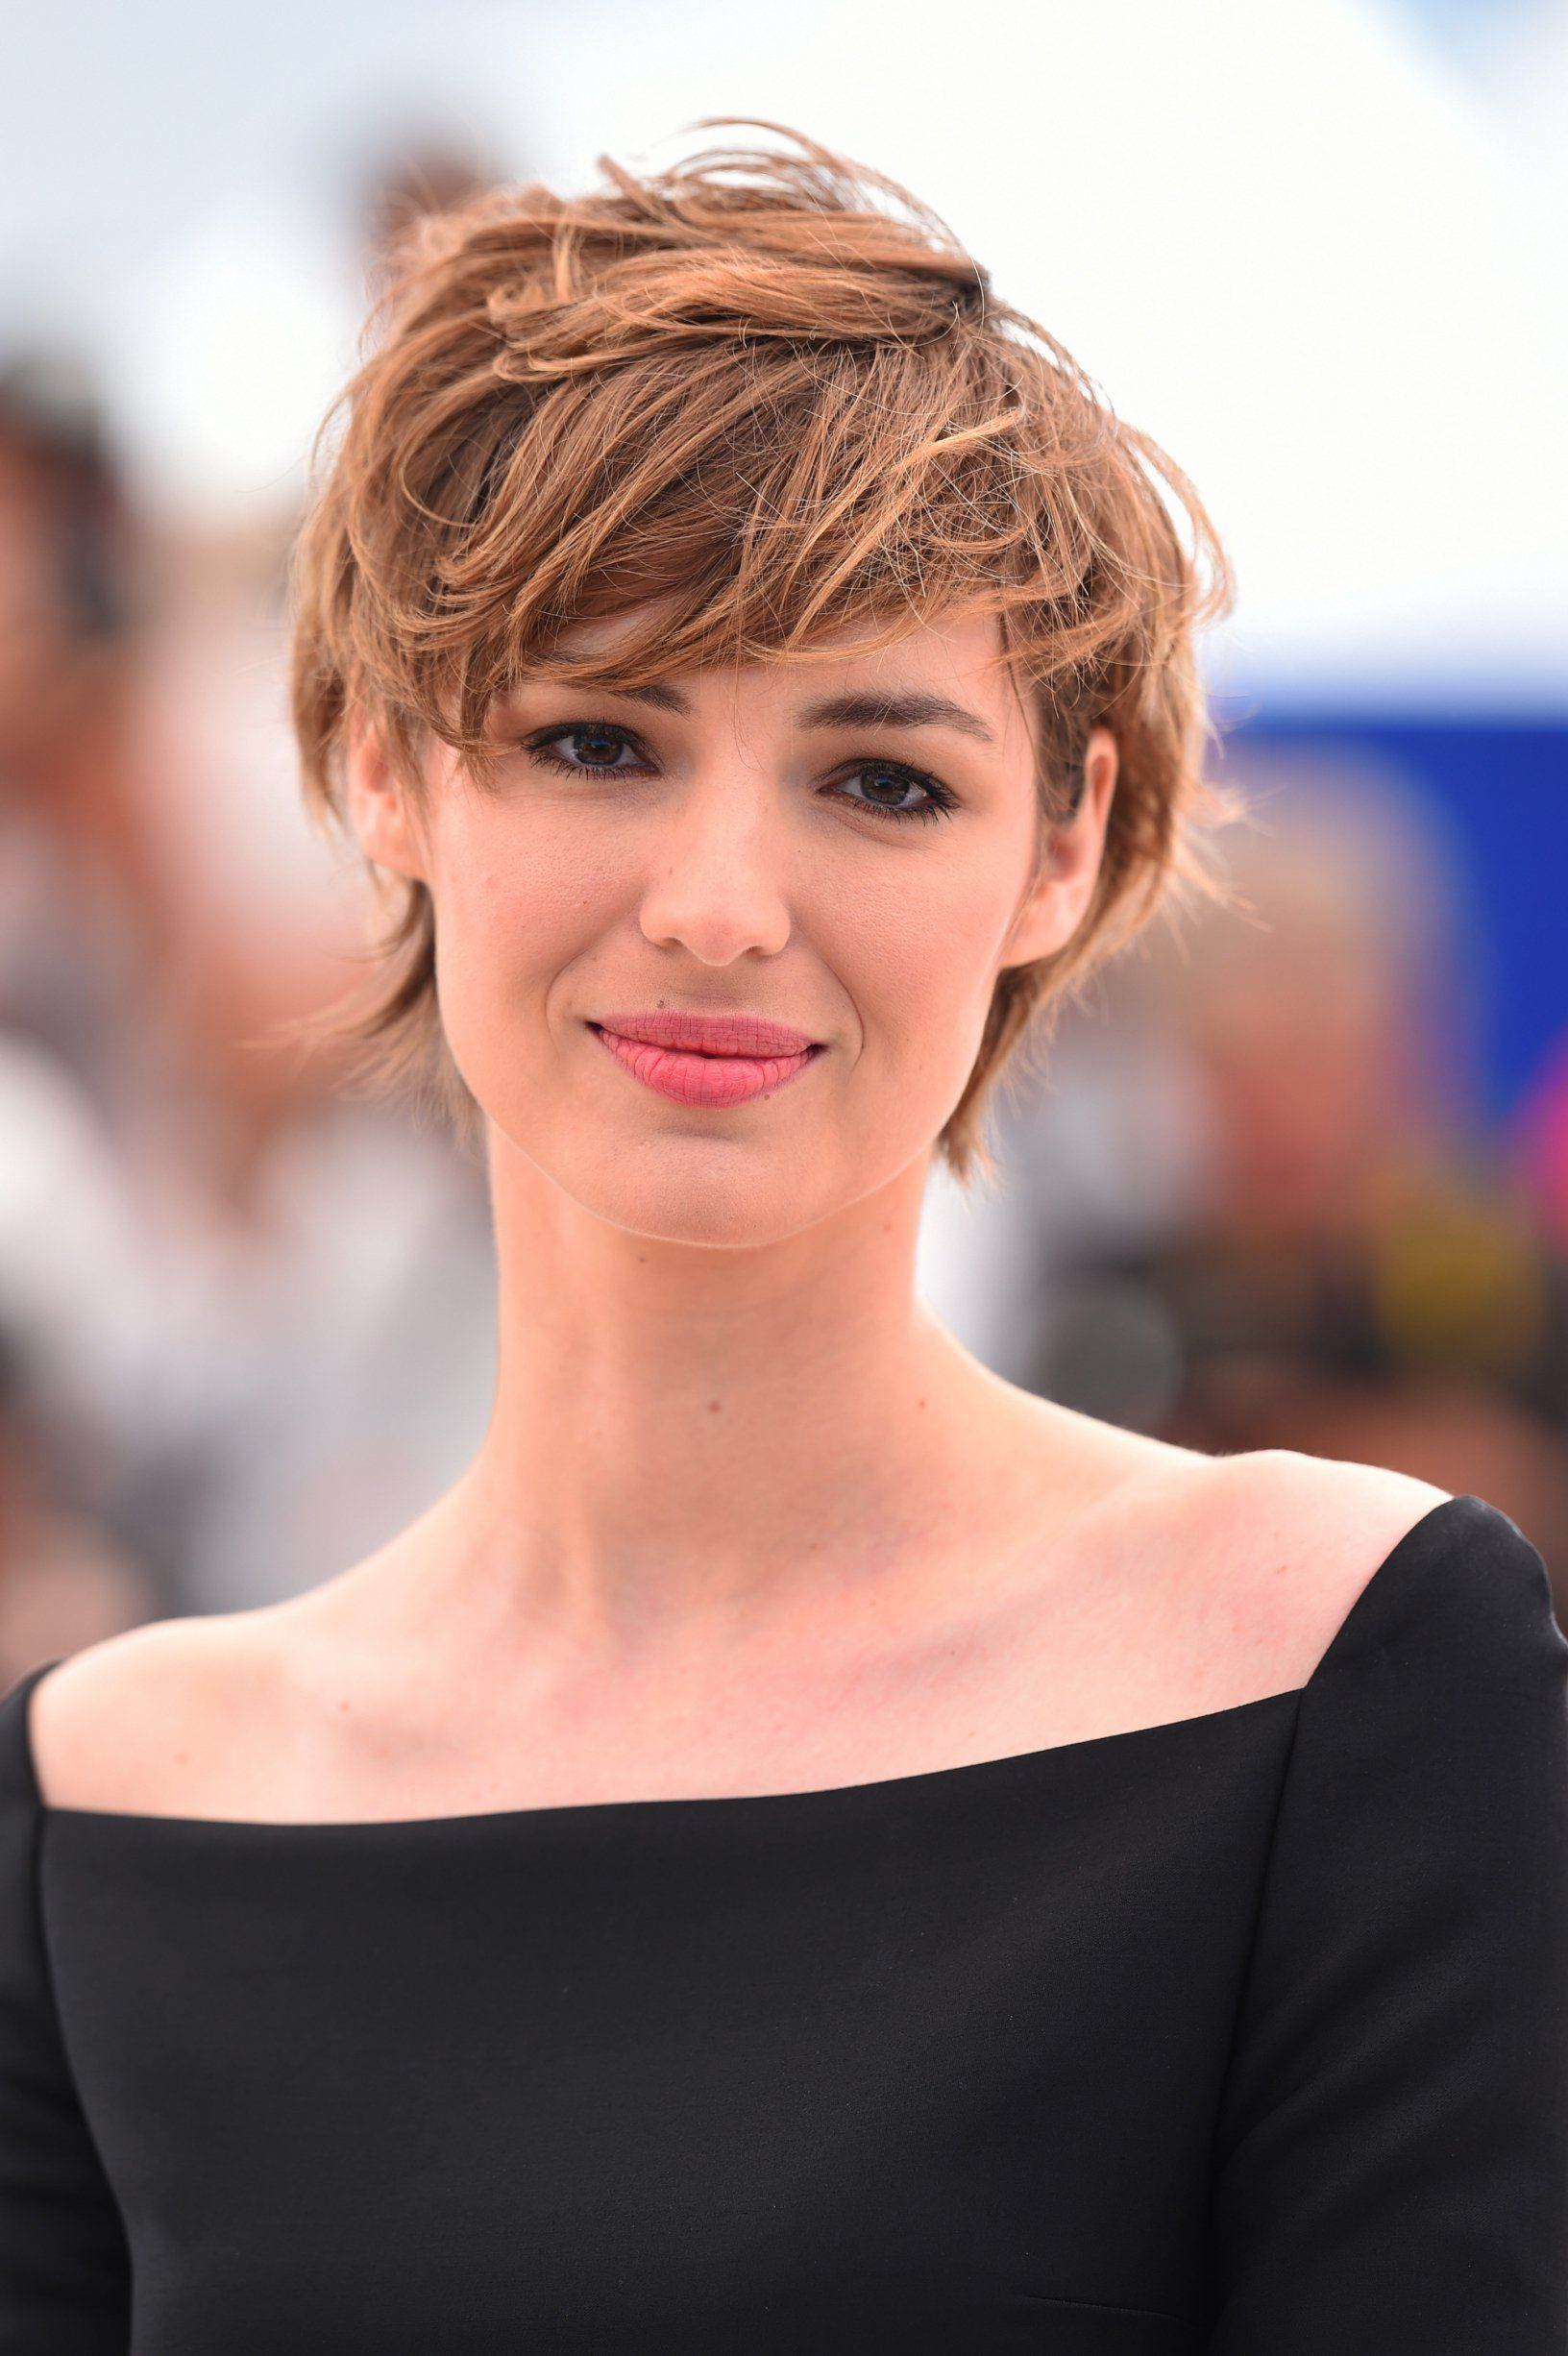 osez la coupe pixie coupes pixie louise bourgoin et. Black Bedroom Furniture Sets. Home Design Ideas